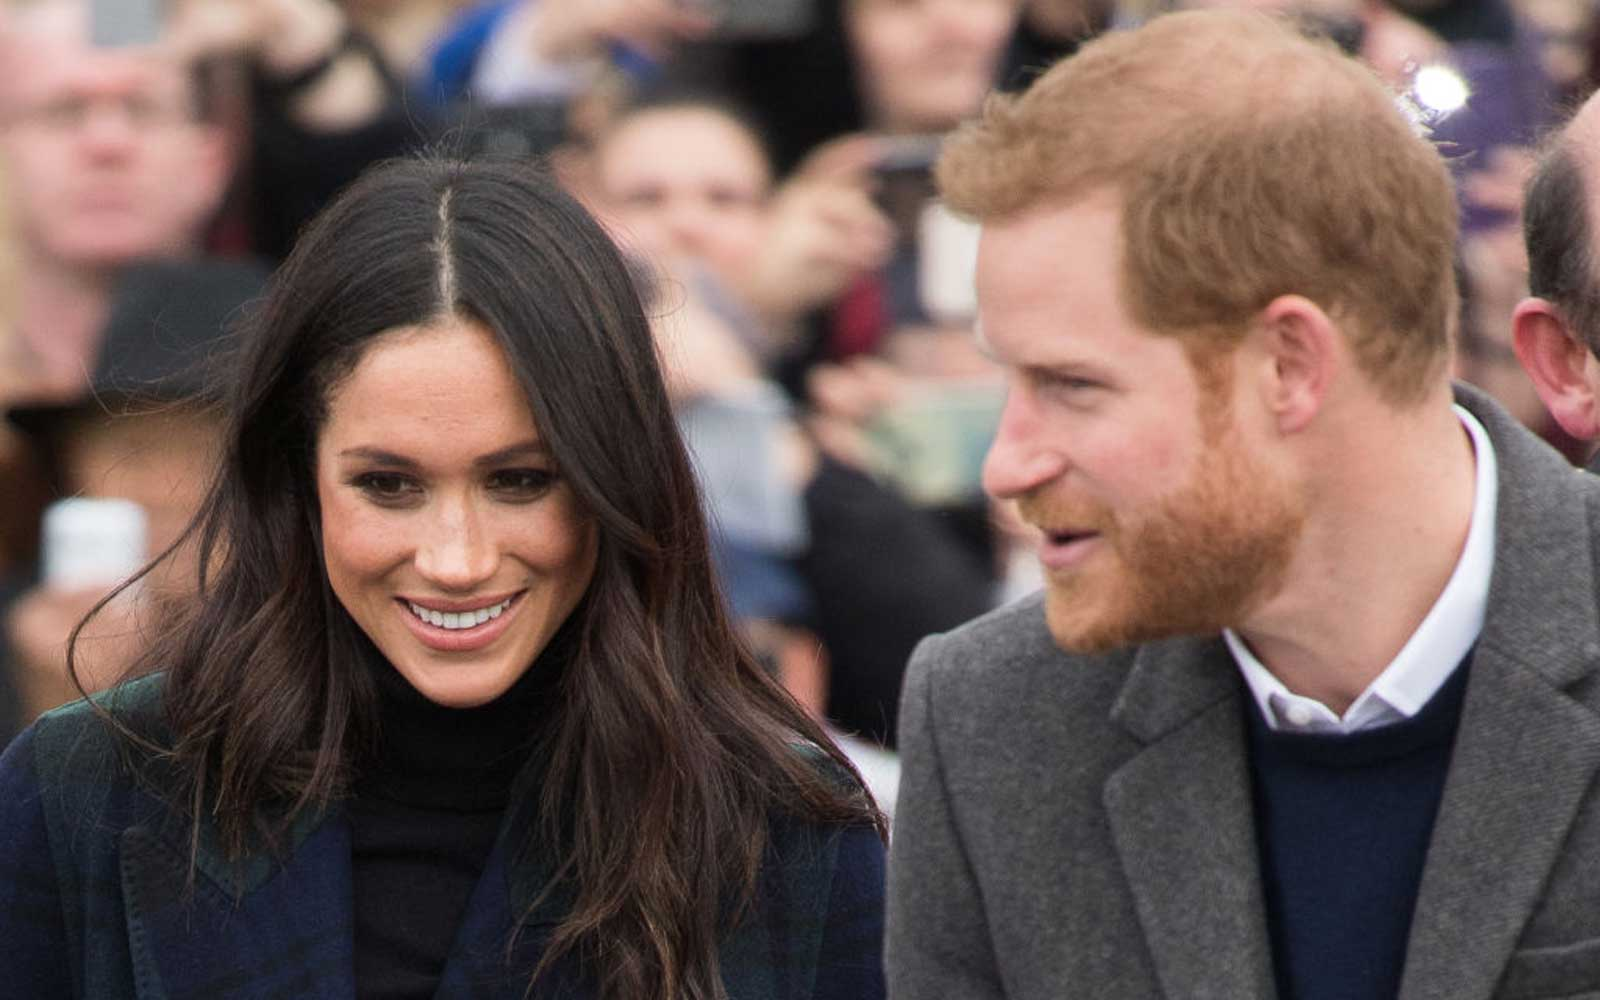 Prince Harry and Meghan Markle Just Dropped Big News About Some Special Wedding Guests